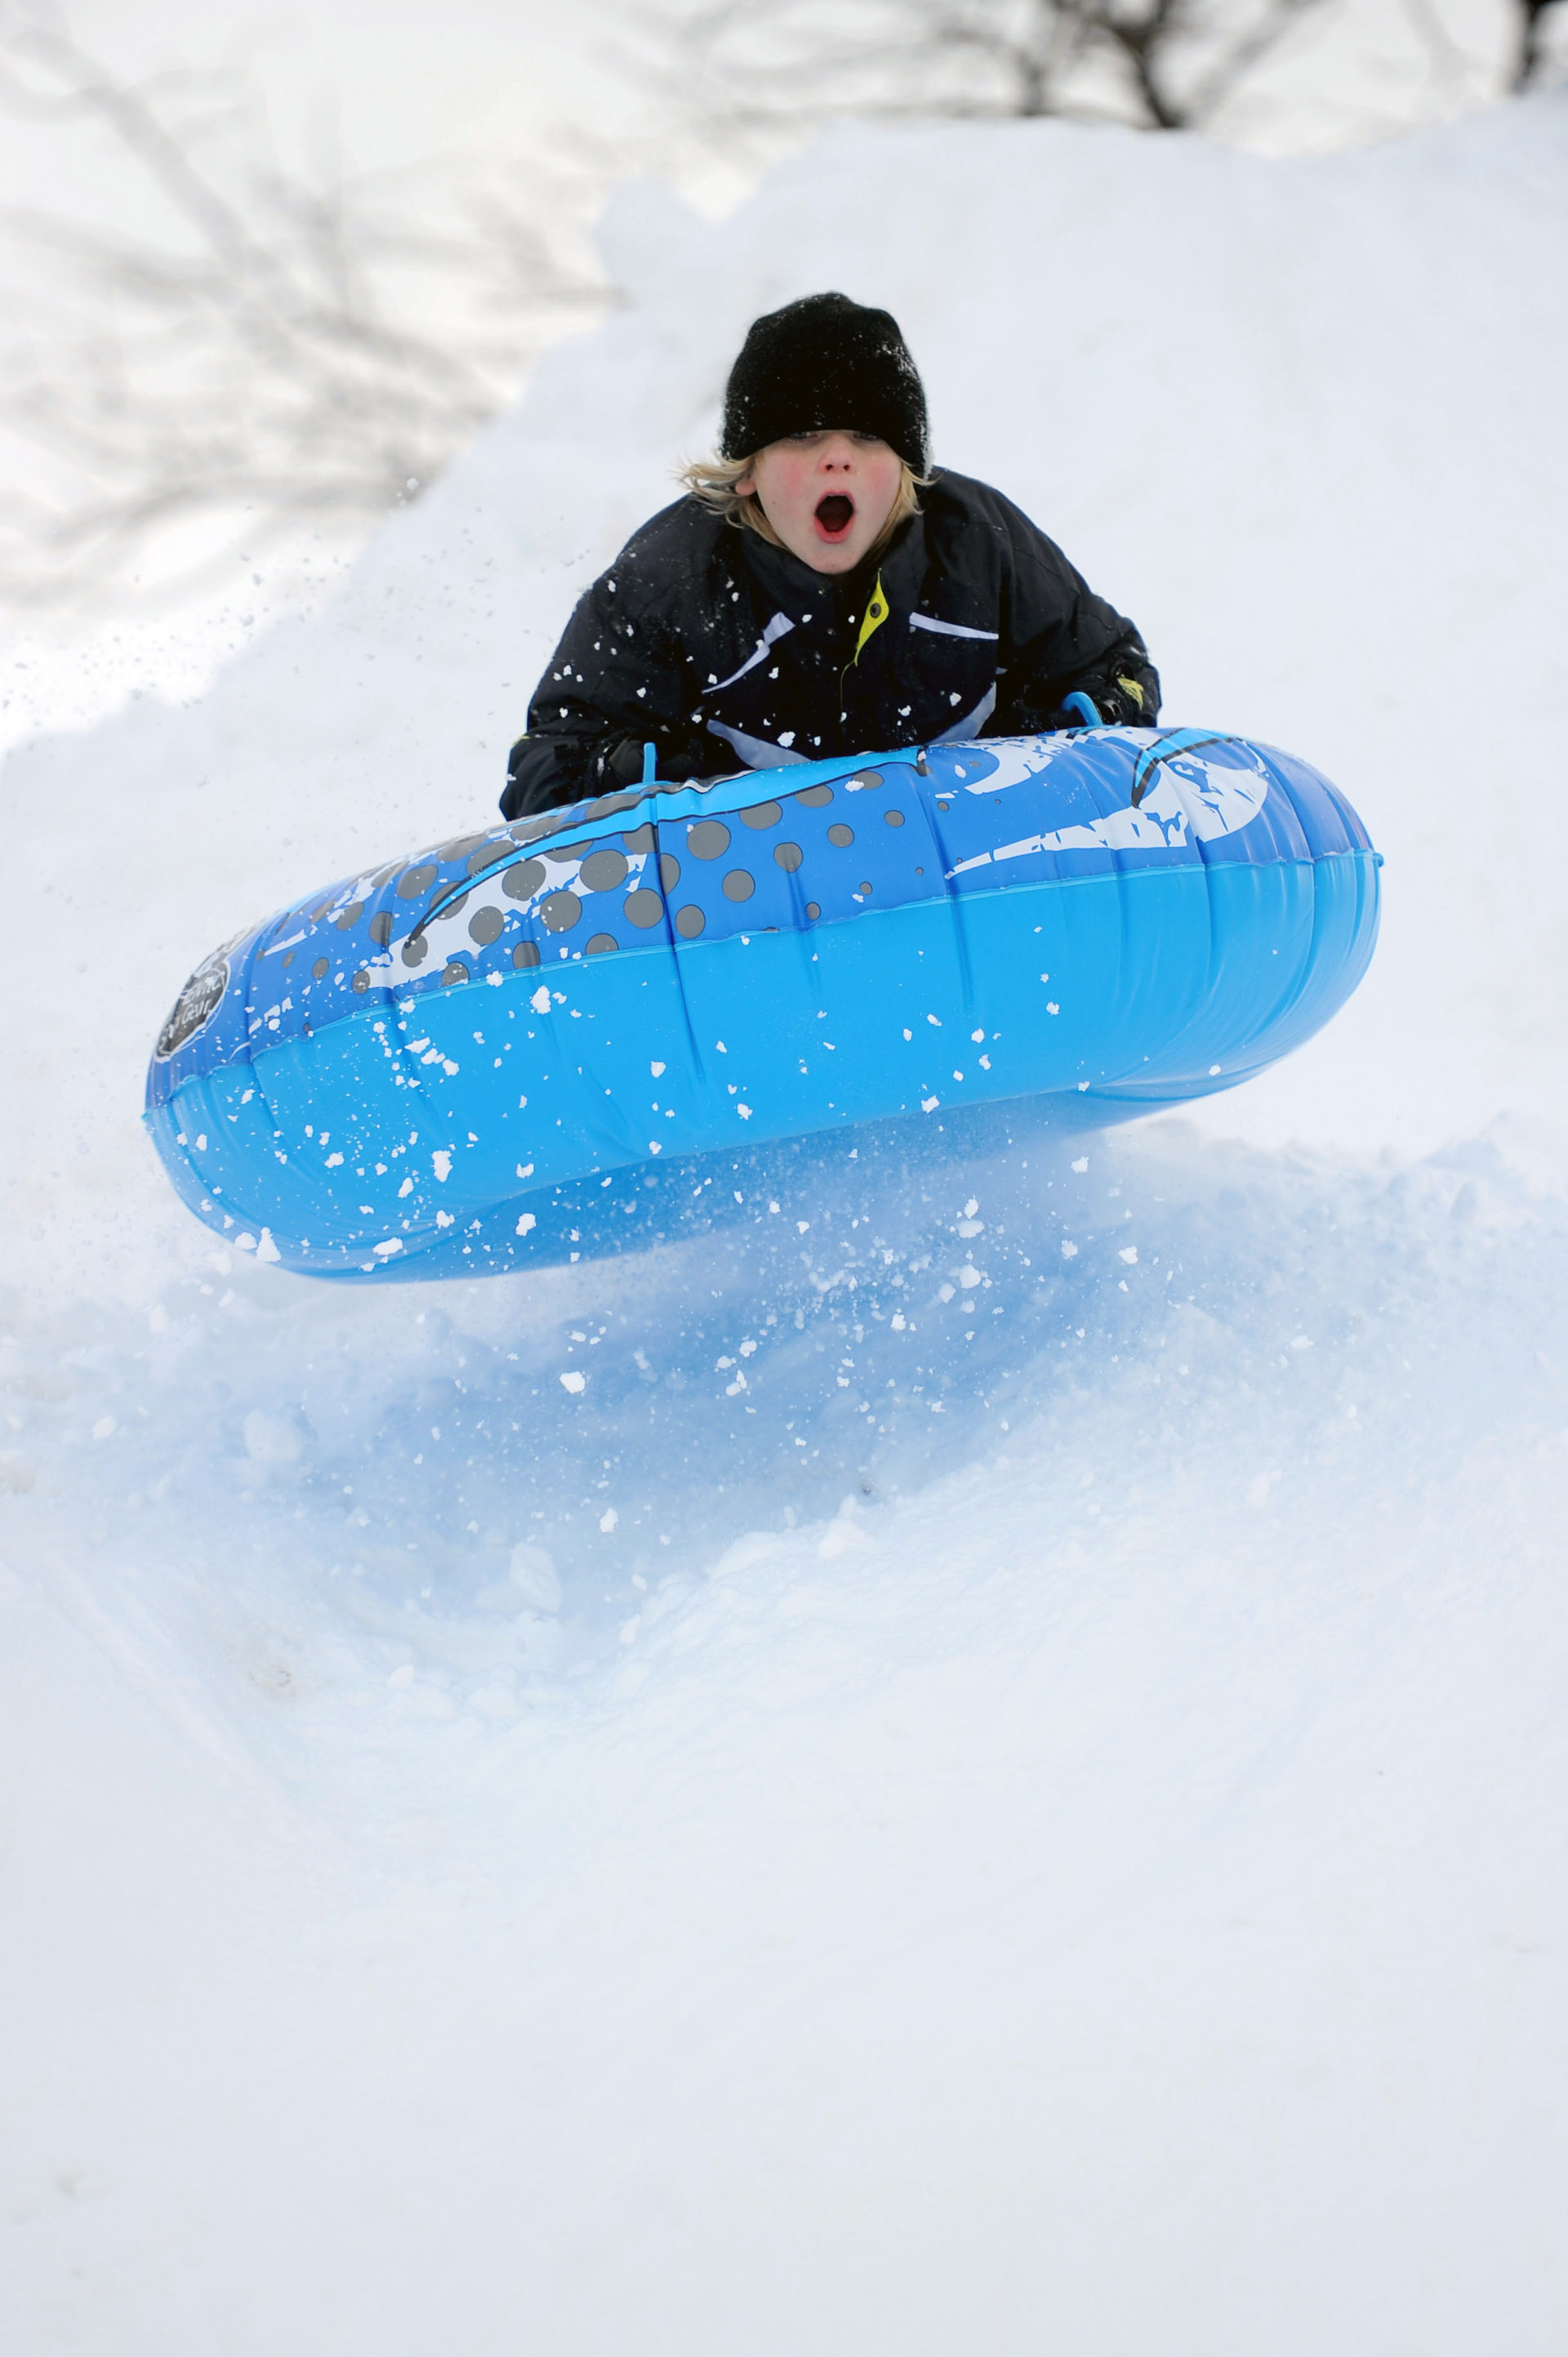 Christopher Puchala, 11, catches some air as he sleds off a giant mound of snow created by plows in Westport on Wednesday, January 12, 2011.